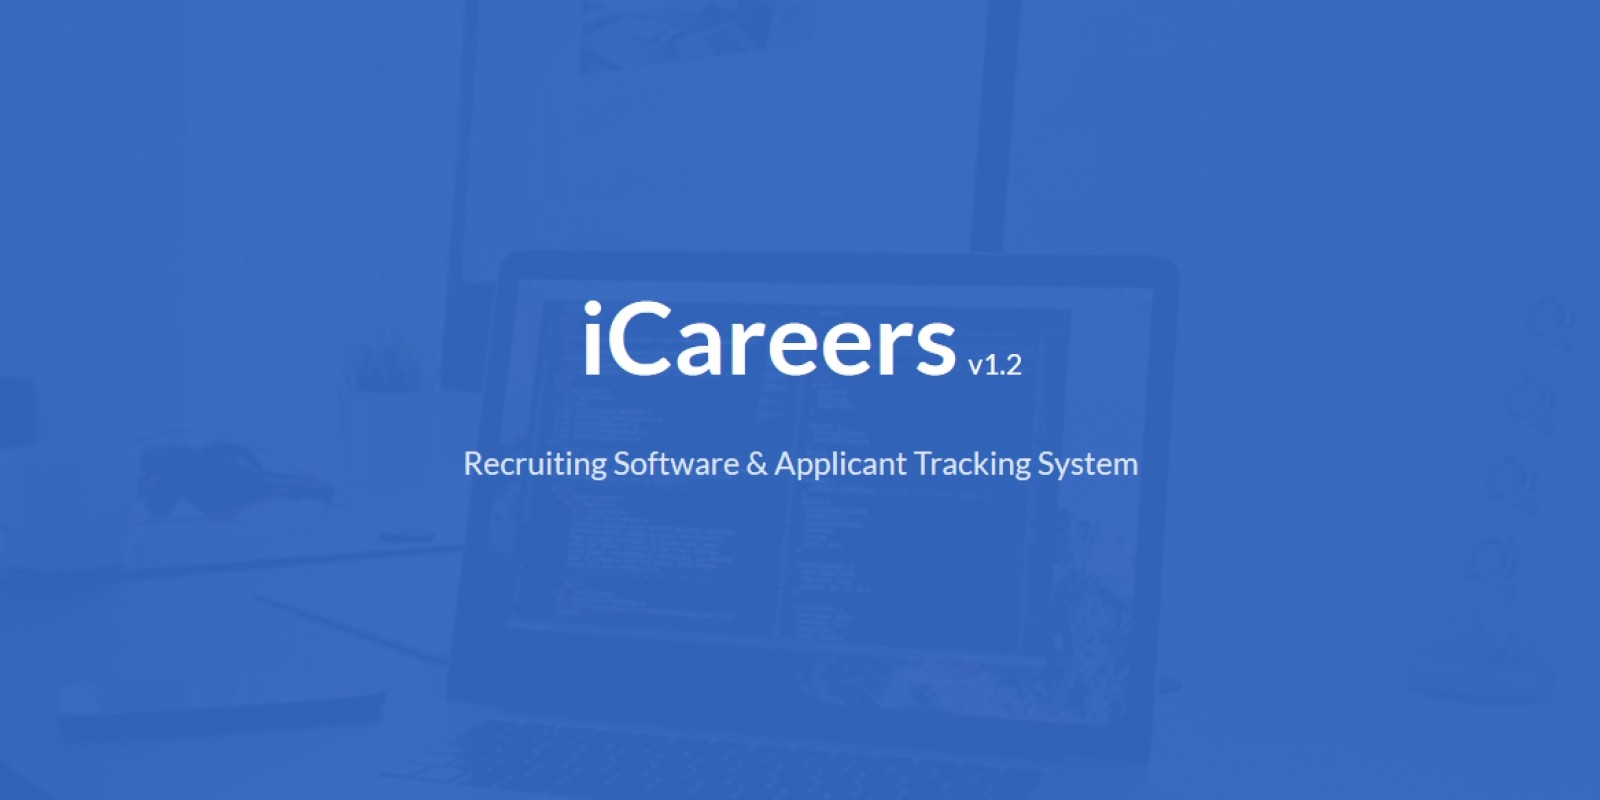 iCareers - Recruiting Software